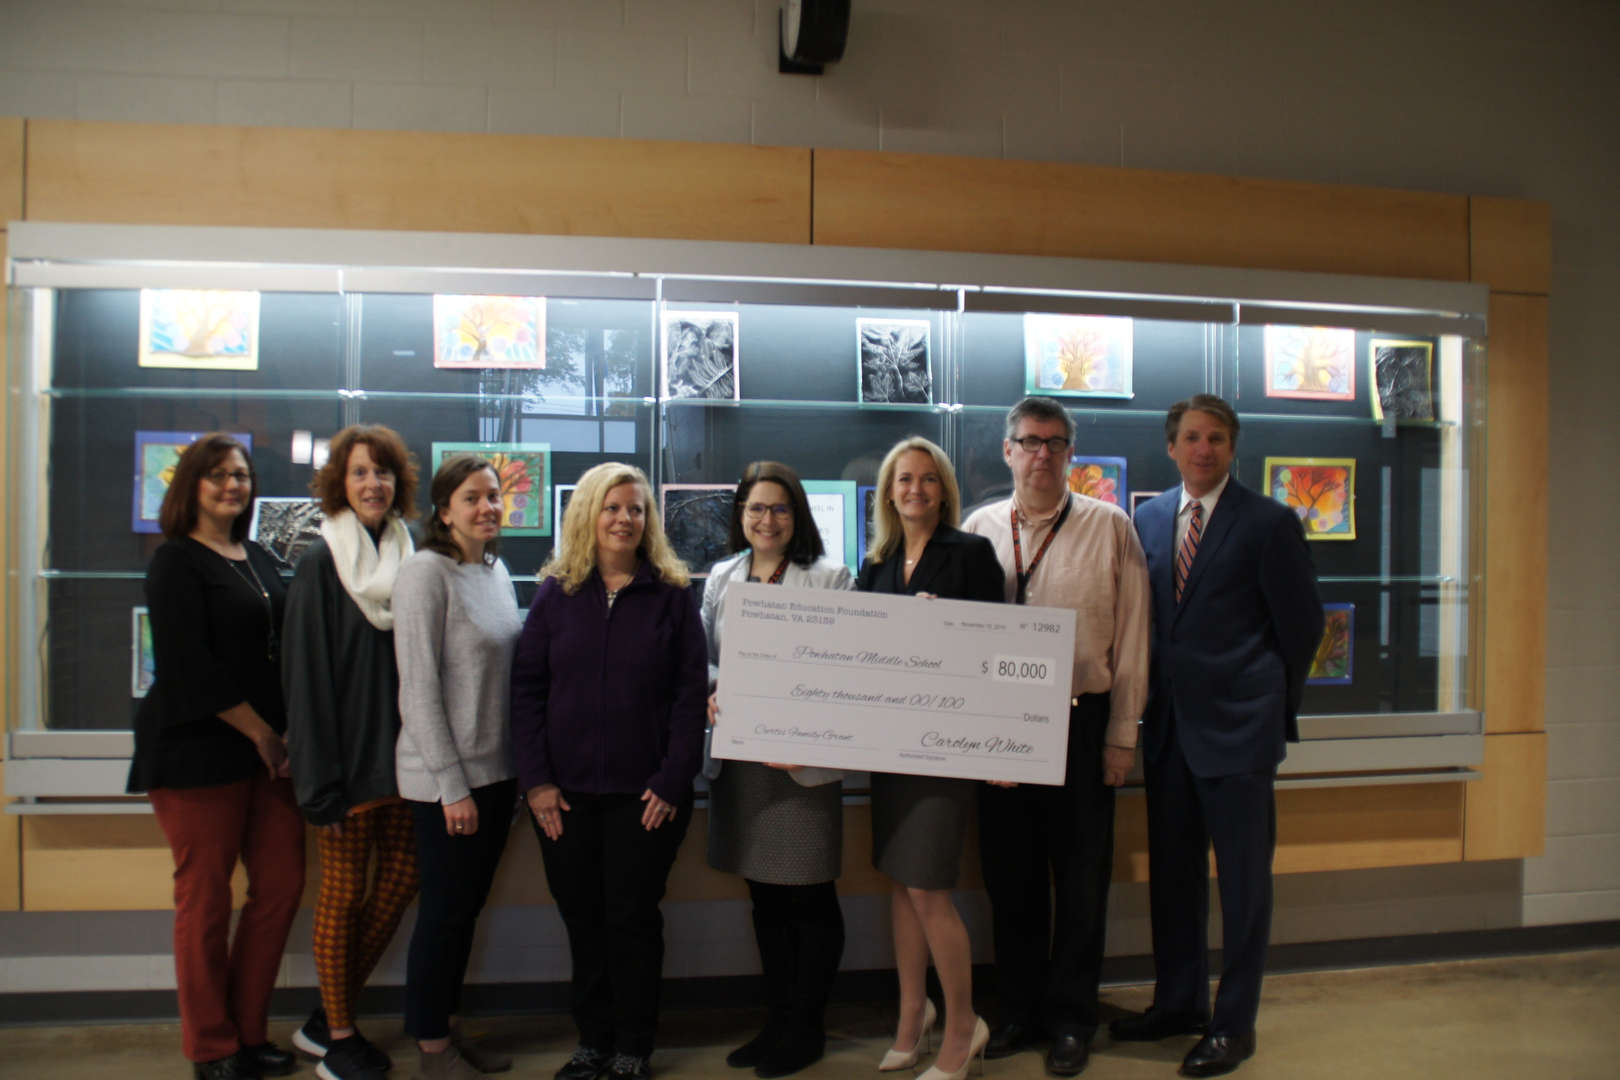 Pocahontas Middle receives Powhatan Education Foundation/Curtis Family Grant